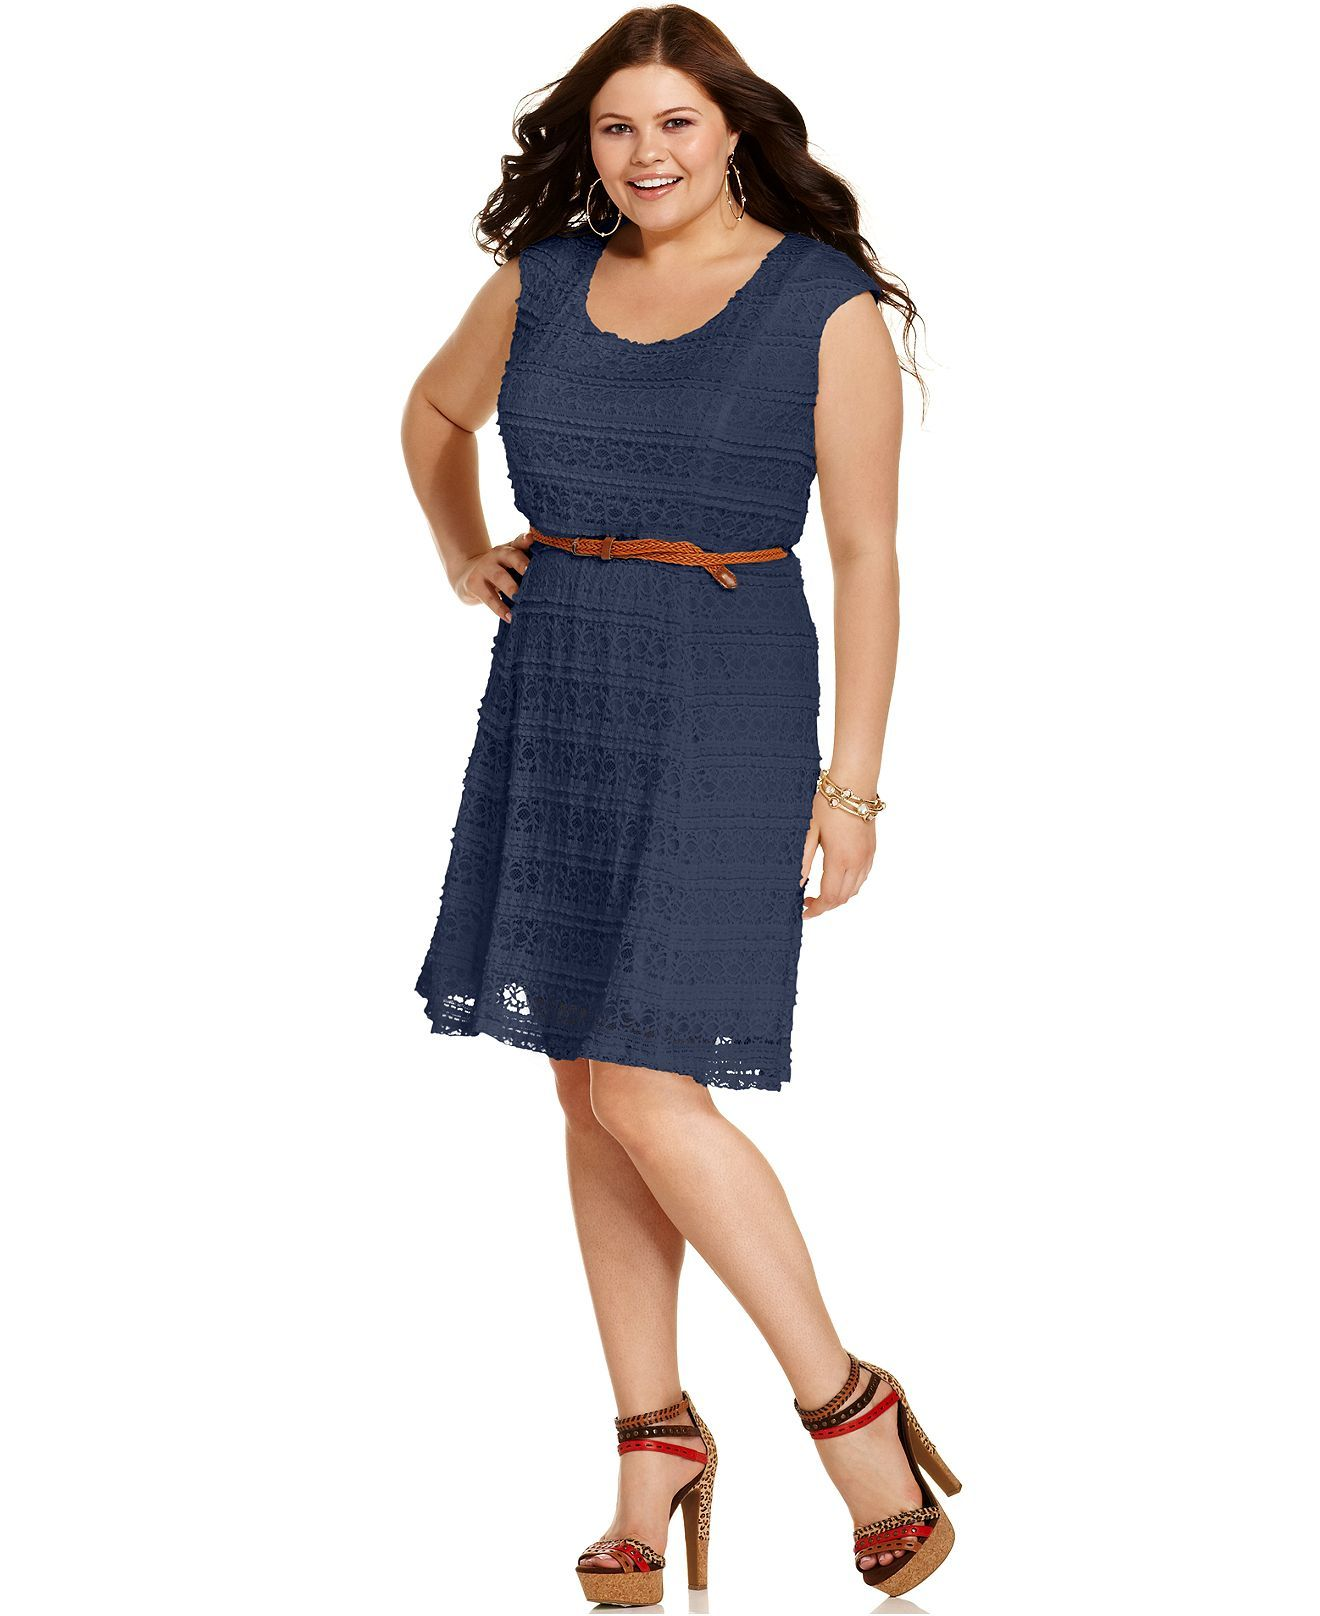 trixxi plus size dress, cap-sleeve lace belted a-line - plus size